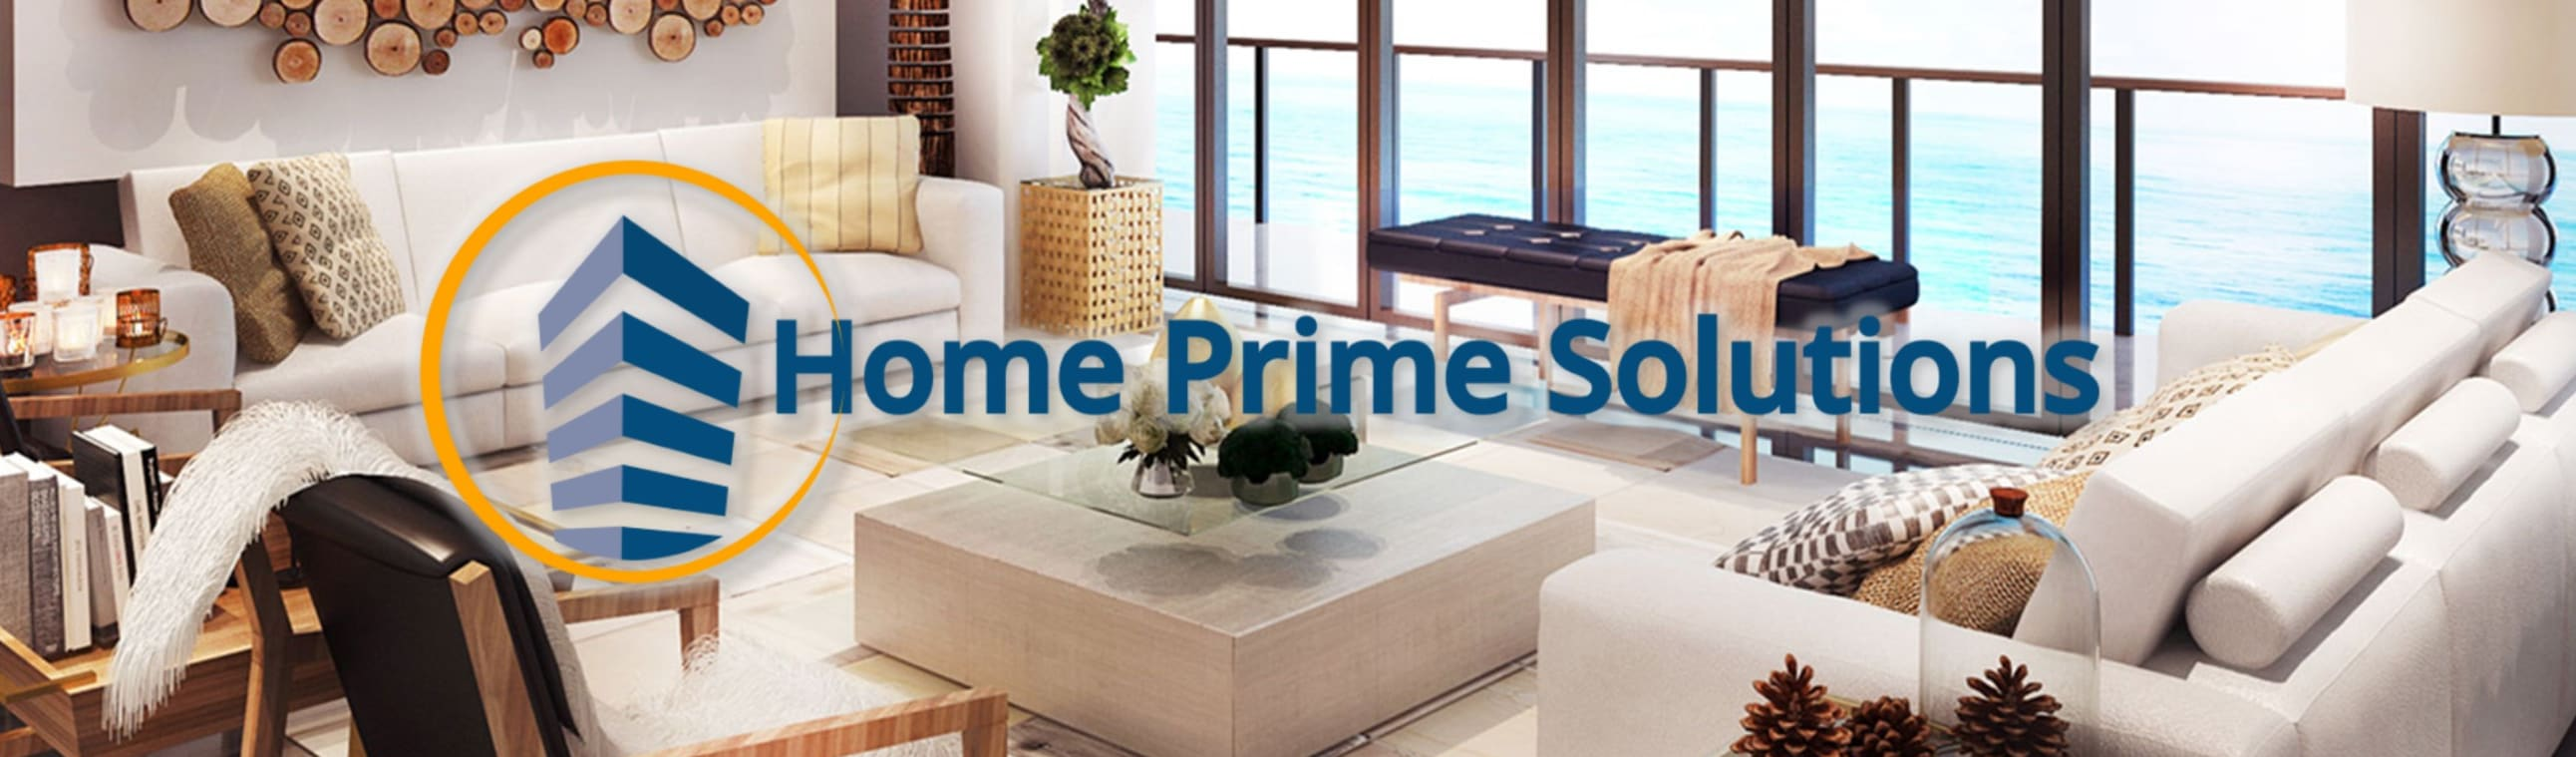 Home Prime Solutions